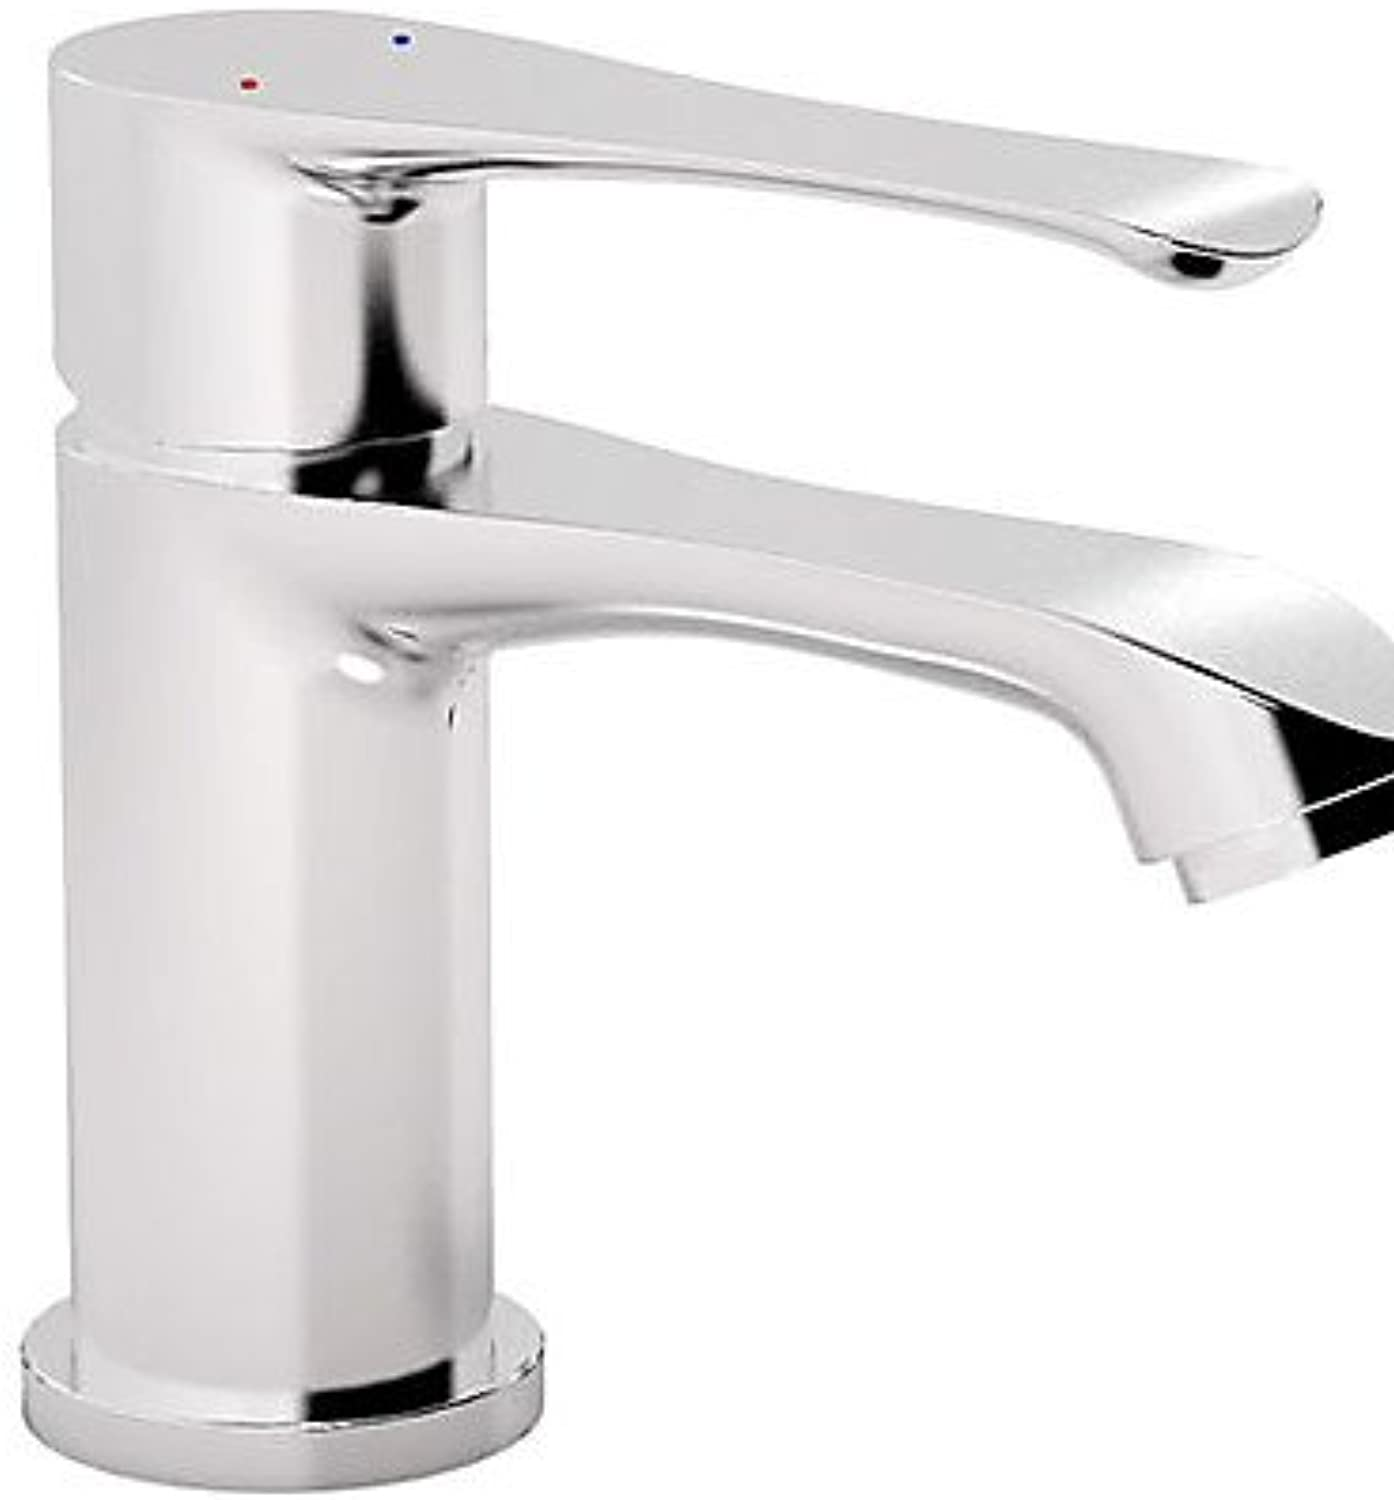 HJKDGH Faucet Contemporary Chrome Finish Single Handle Centerset Bathroom Sink Faucet